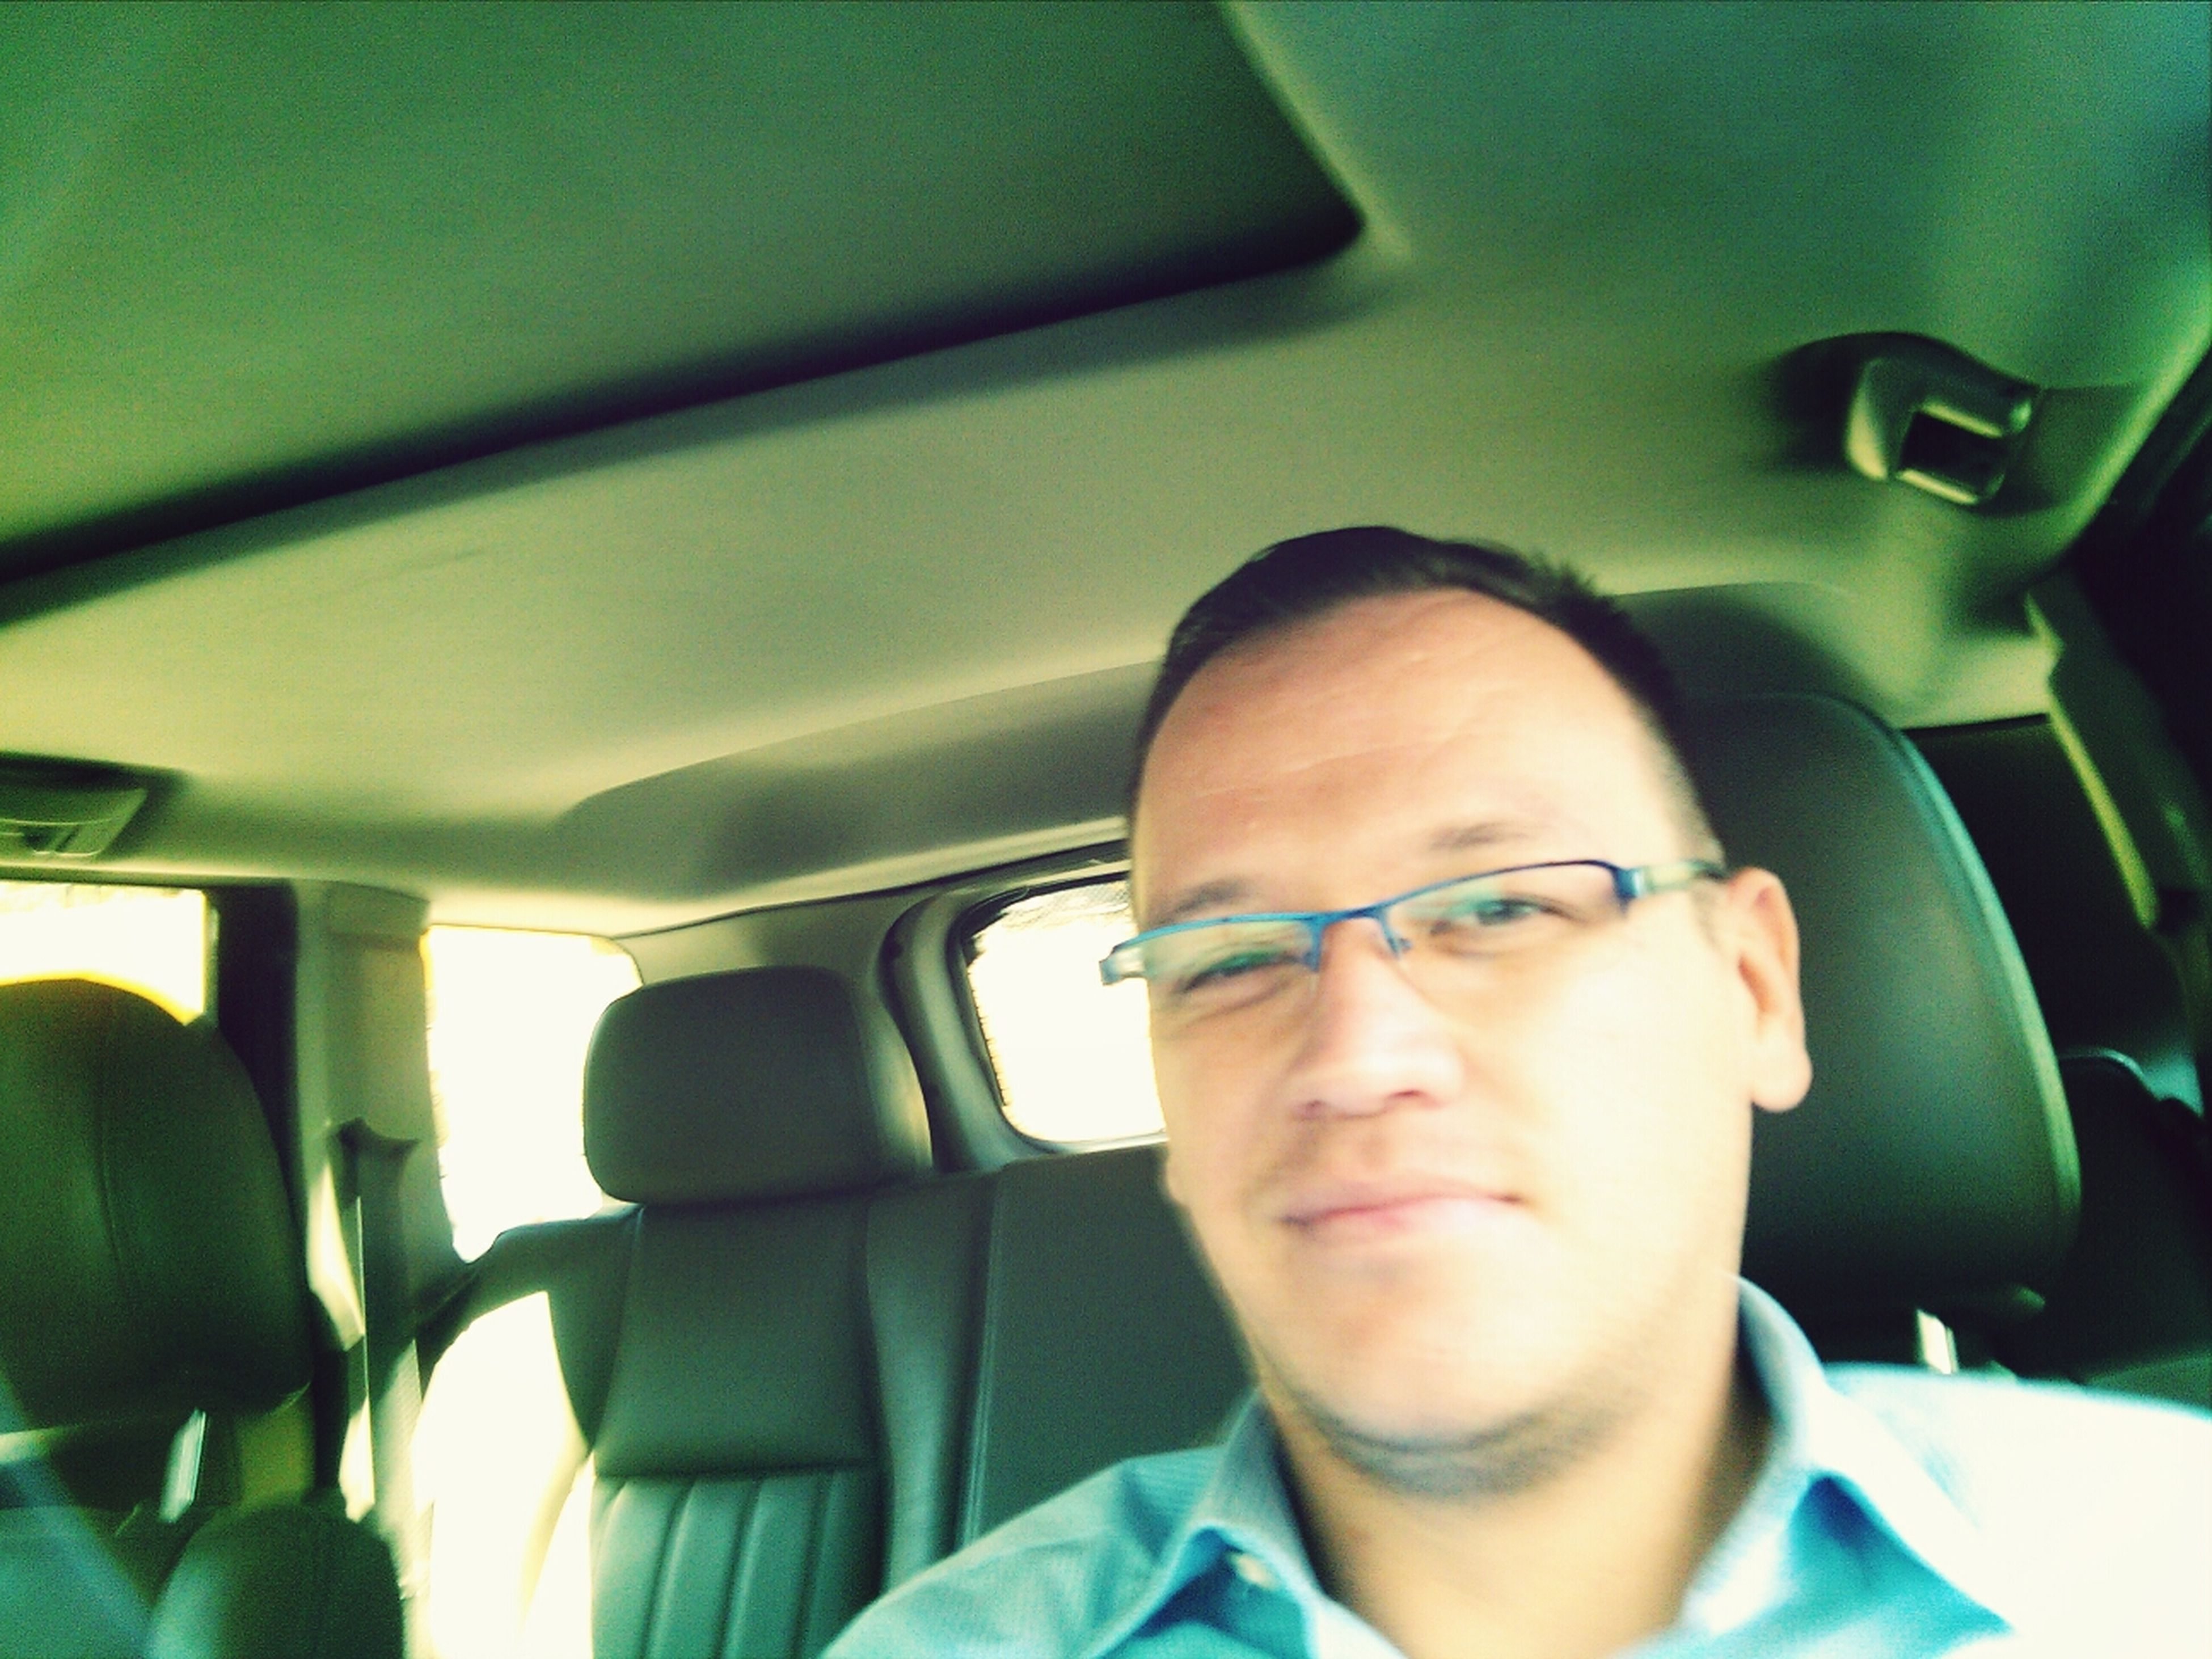 vehicle interior, indoors, transportation, mode of transport, lifestyles, vehicle seat, car interior, car, sitting, land vehicle, travel, headshot, window, leisure activity, young adult, portrait, relaxation, looking at camera